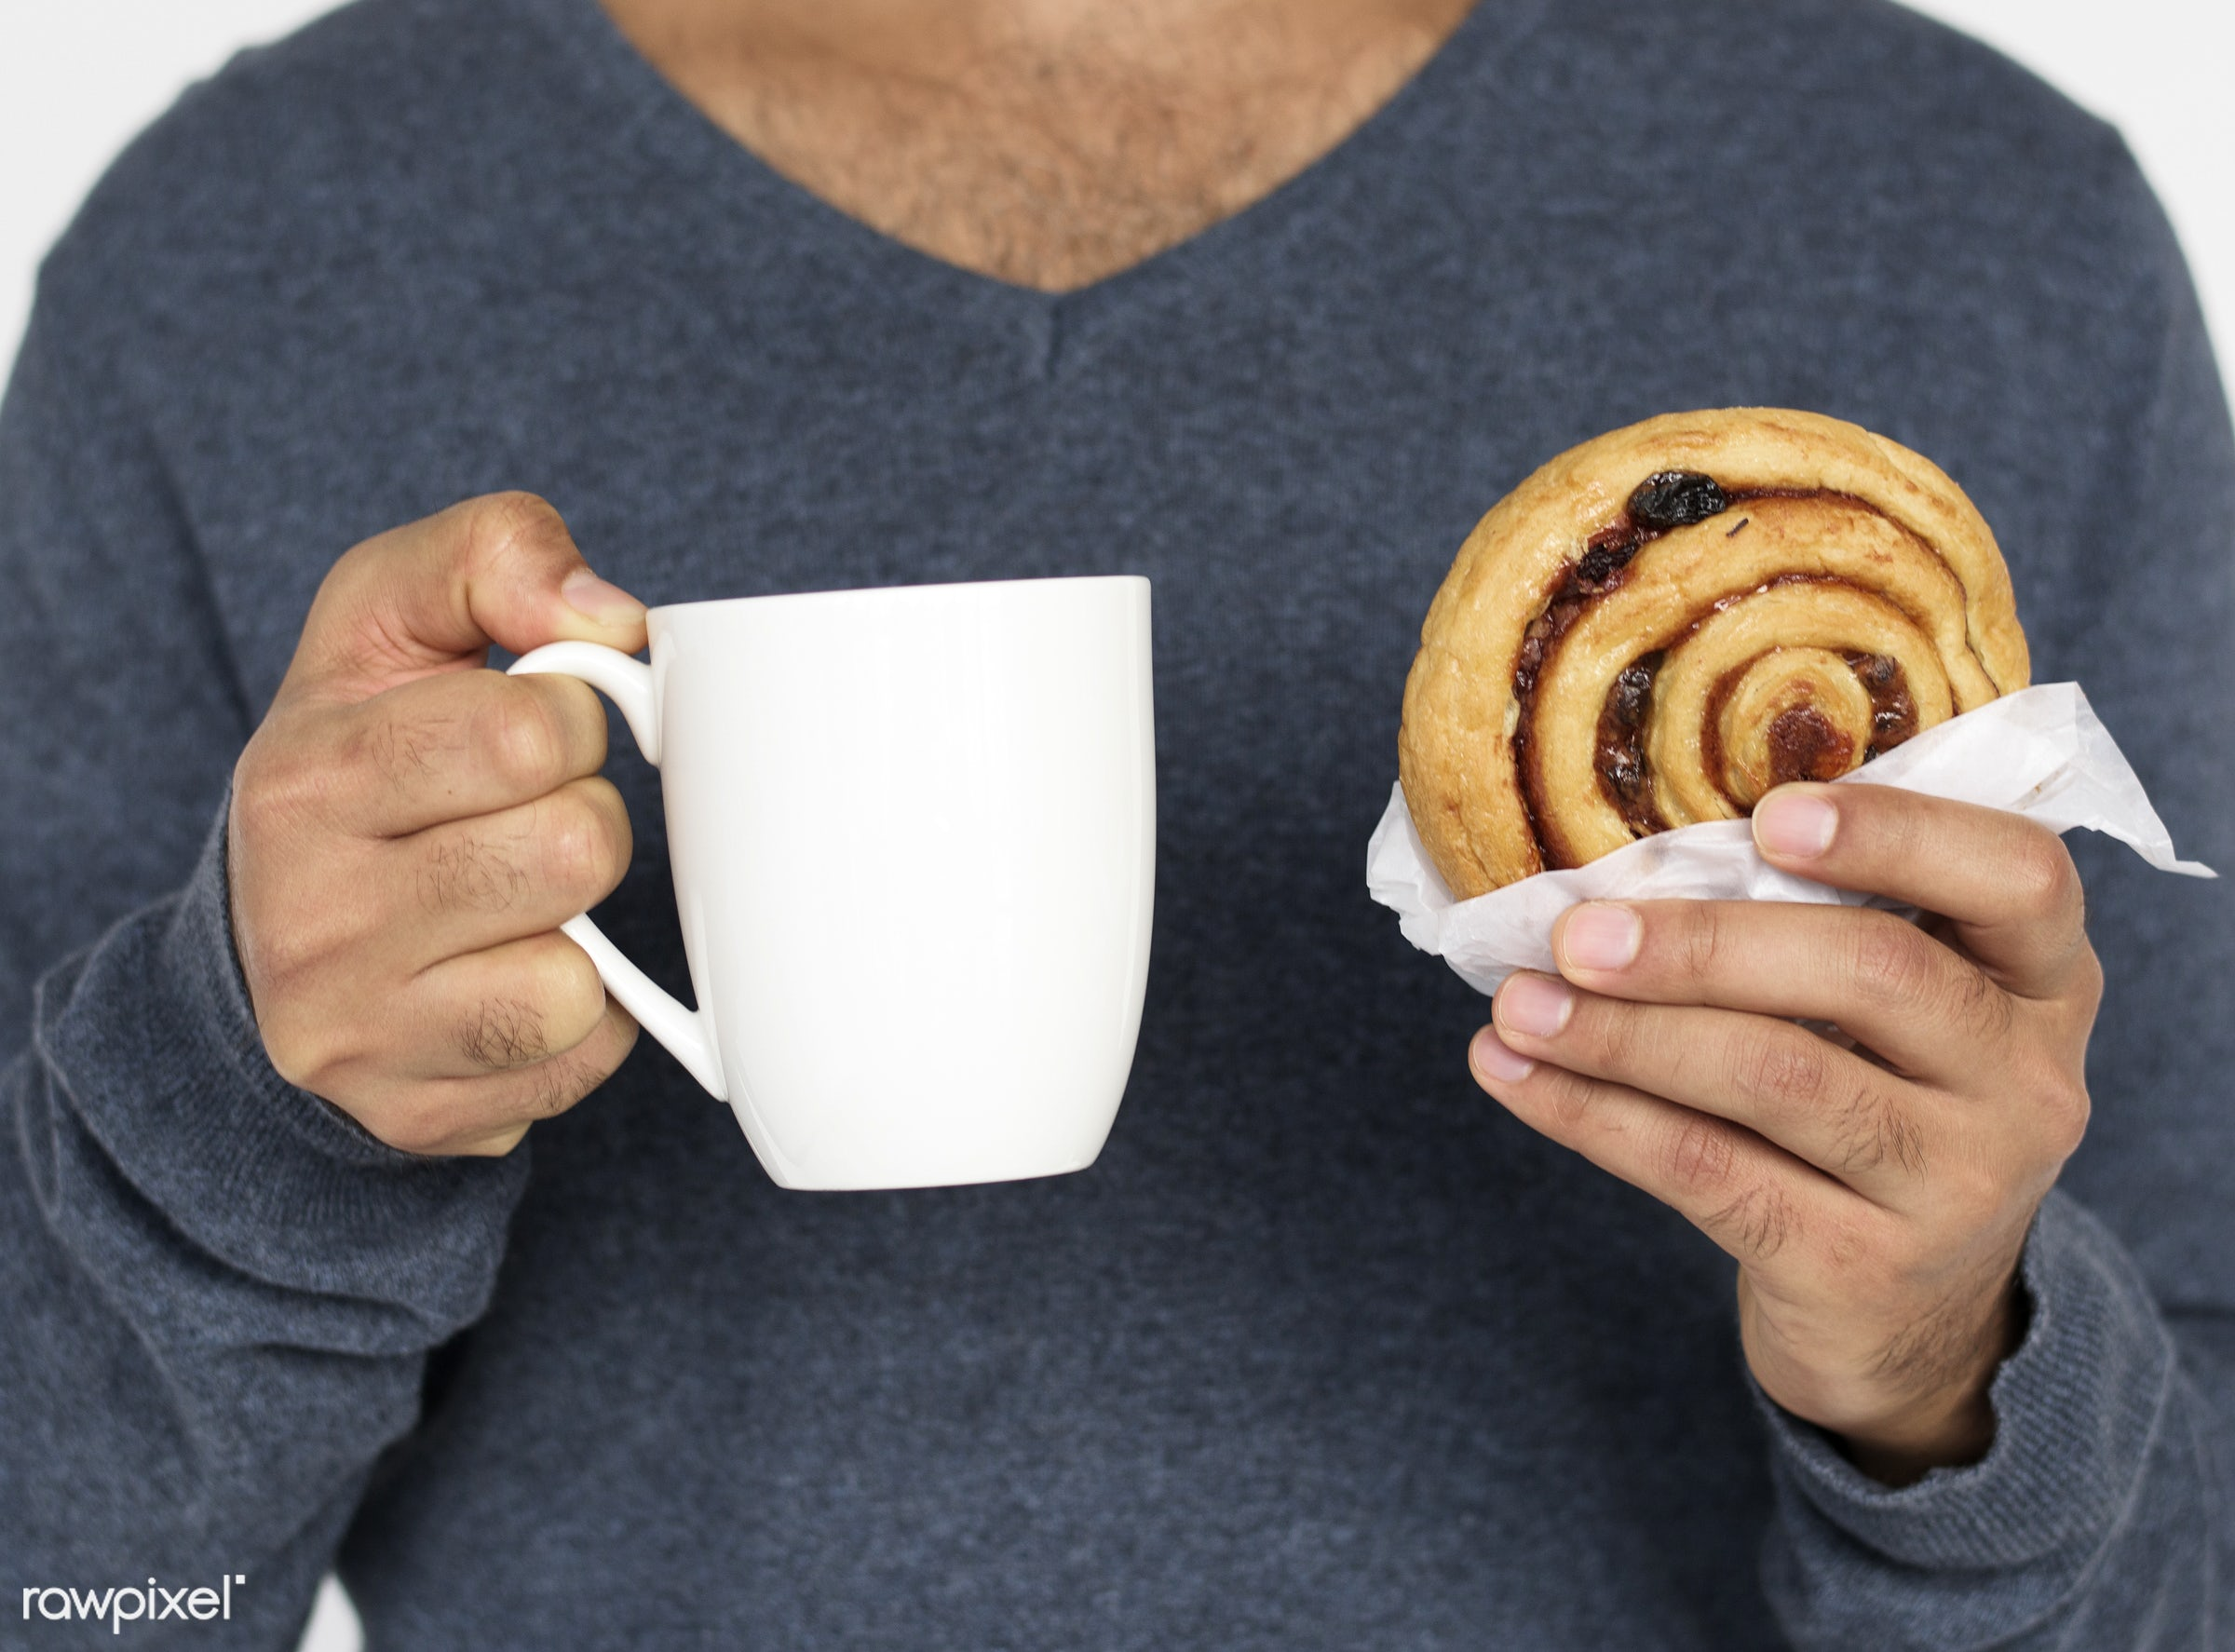 studio, expression, cup, person, model, holding, one, husband, tea, race, people, mug, break, roll, style, bread, casual,...